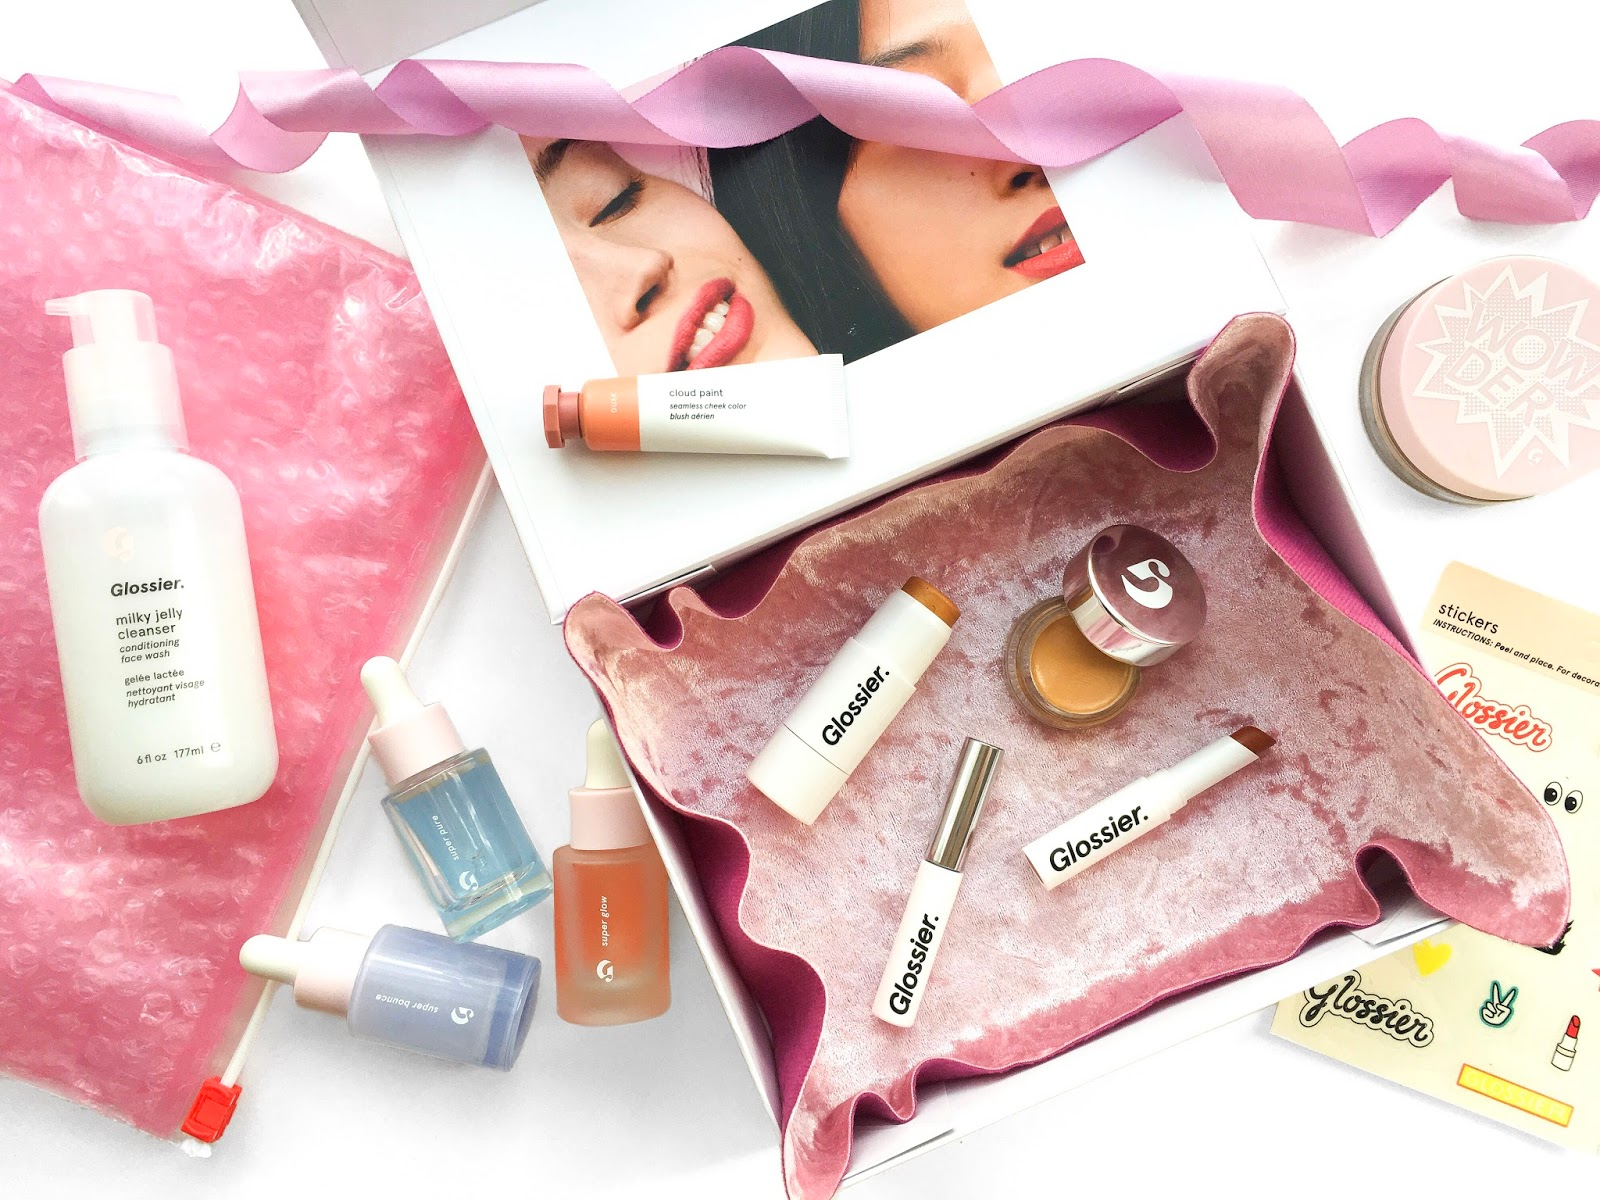 glossier uk review, glossier the super serums review, glossier skincare review, glossier makeup review uk, glossier super glow serum